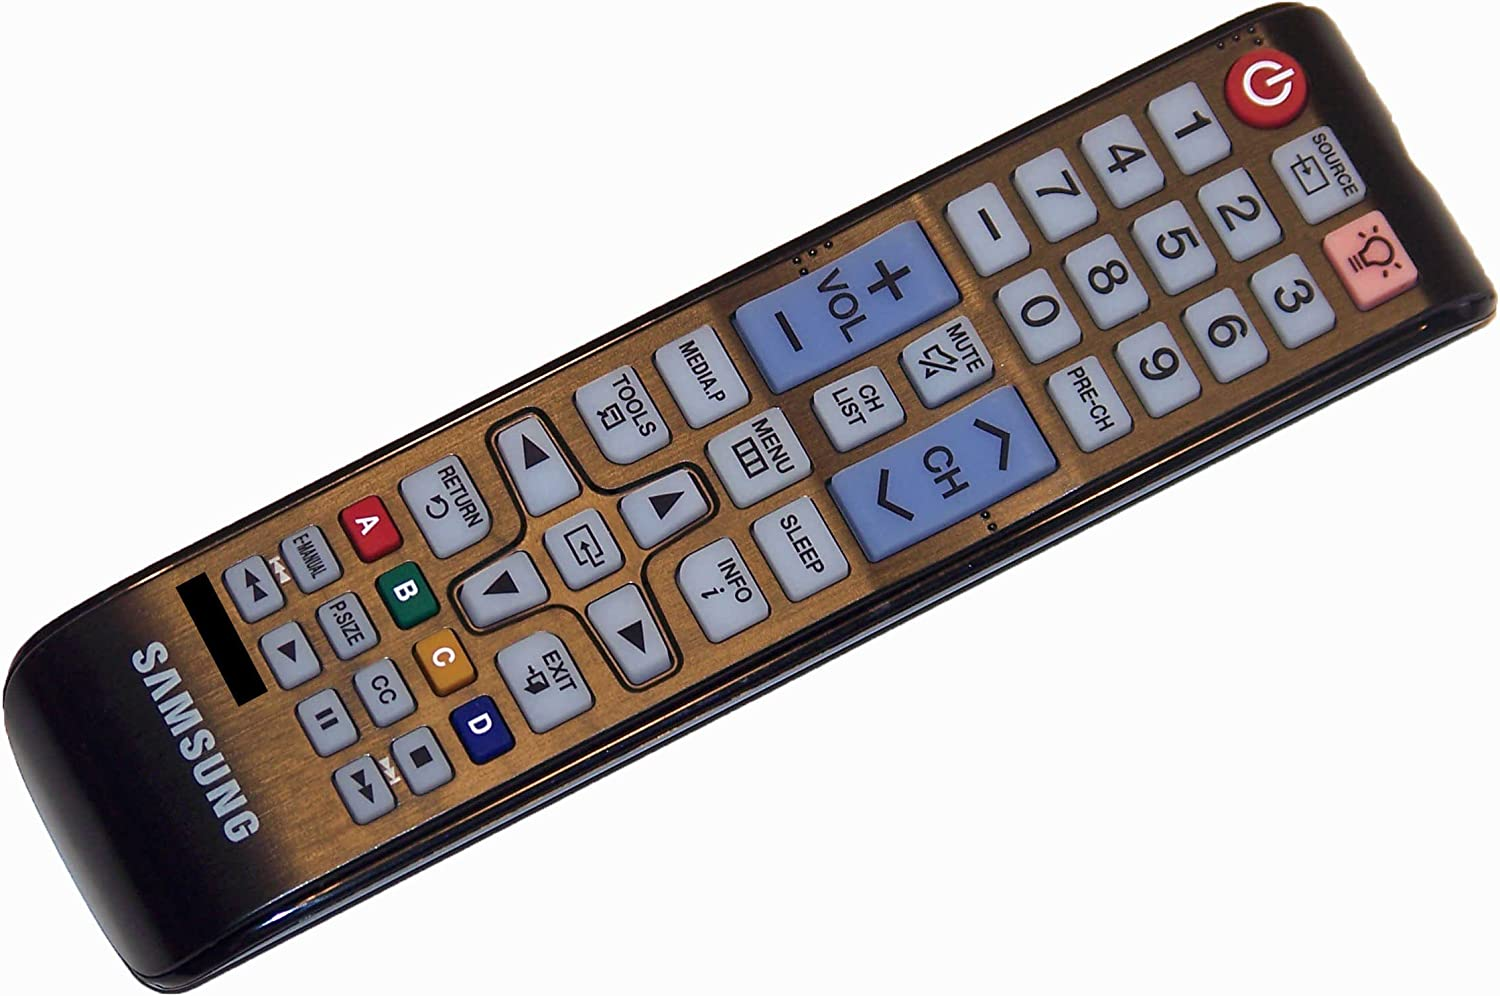 OEM Samsung Remote Control Originally Shipped with: T24D310NH, UN24H4000, UN24H4000AF, UN24H4000AFXZA, UN28H4000